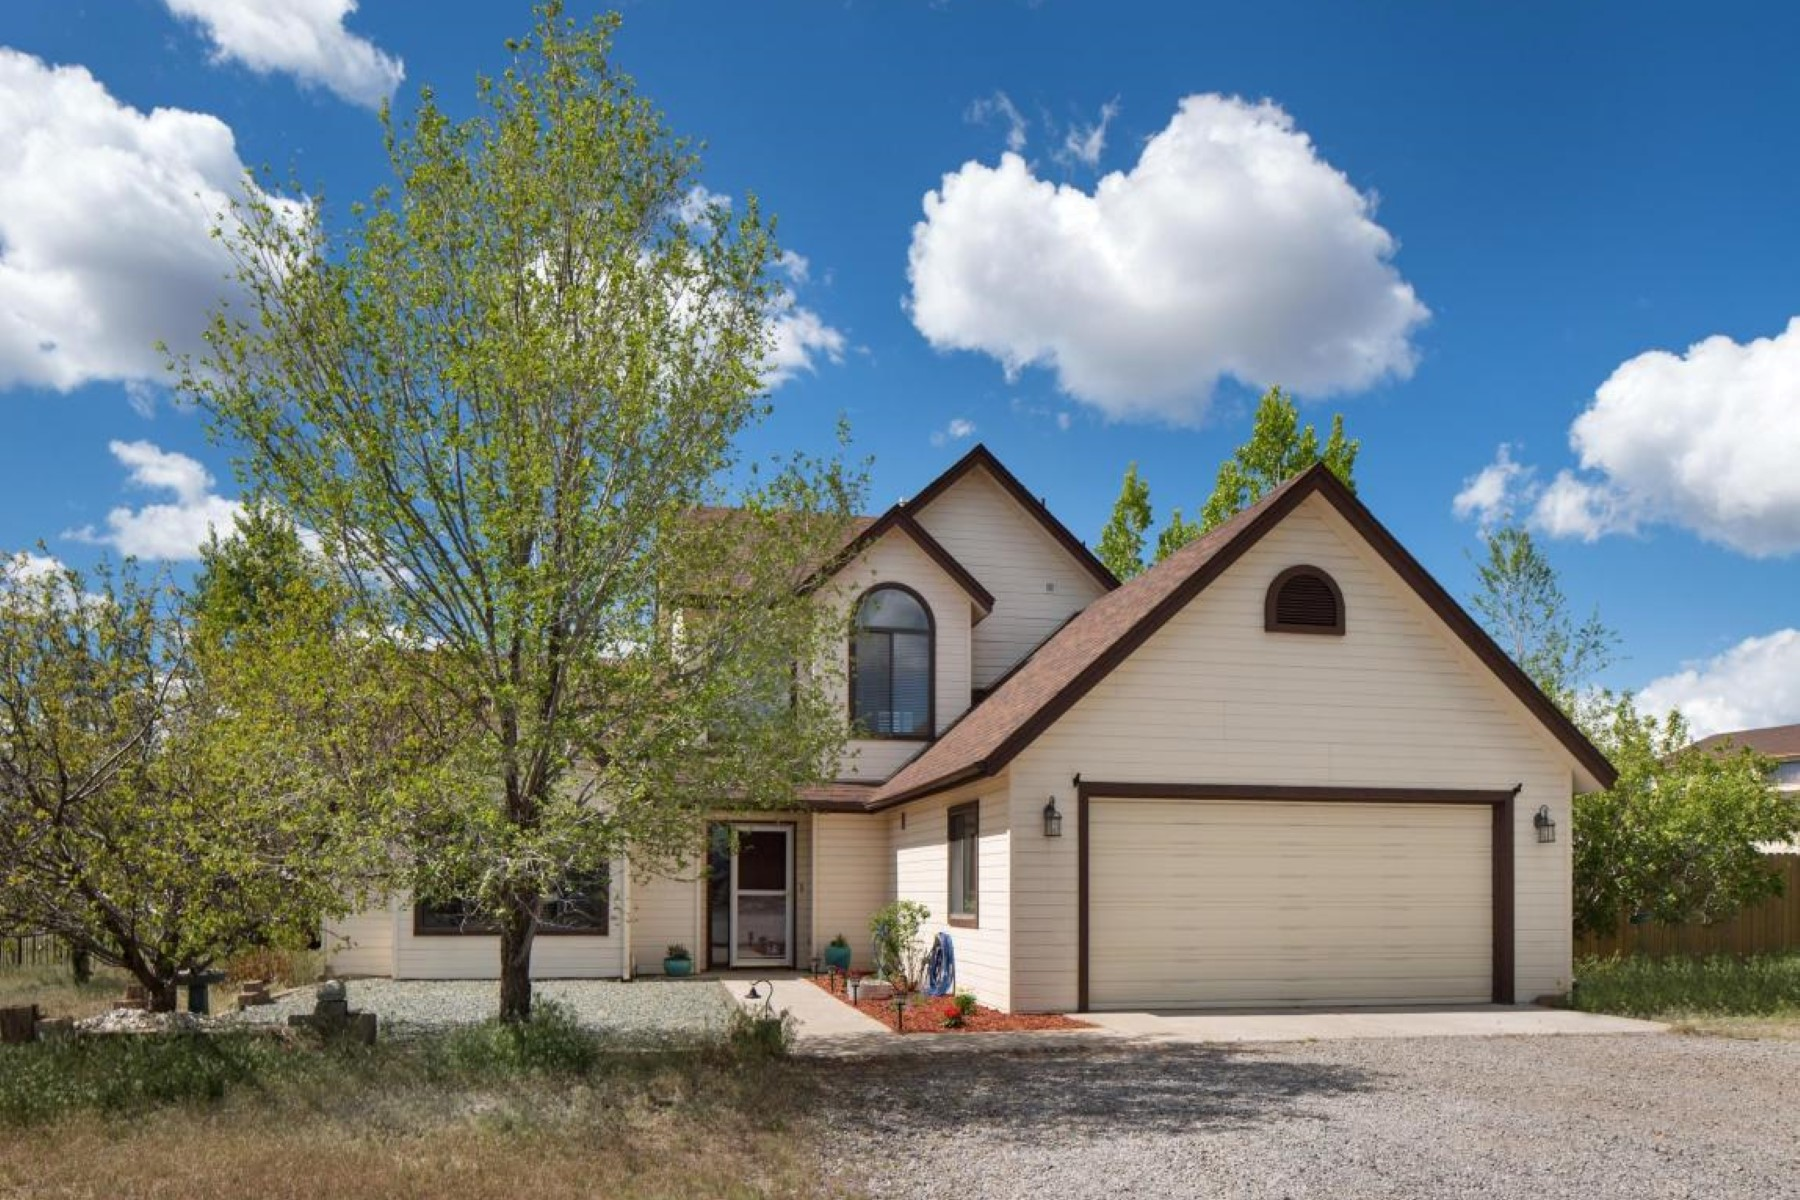 Single Family Home for Sale at Meticulously maintained Flagstaff home 7170 E Yancey Ln Flagstaff, Arizona, 86004 United States